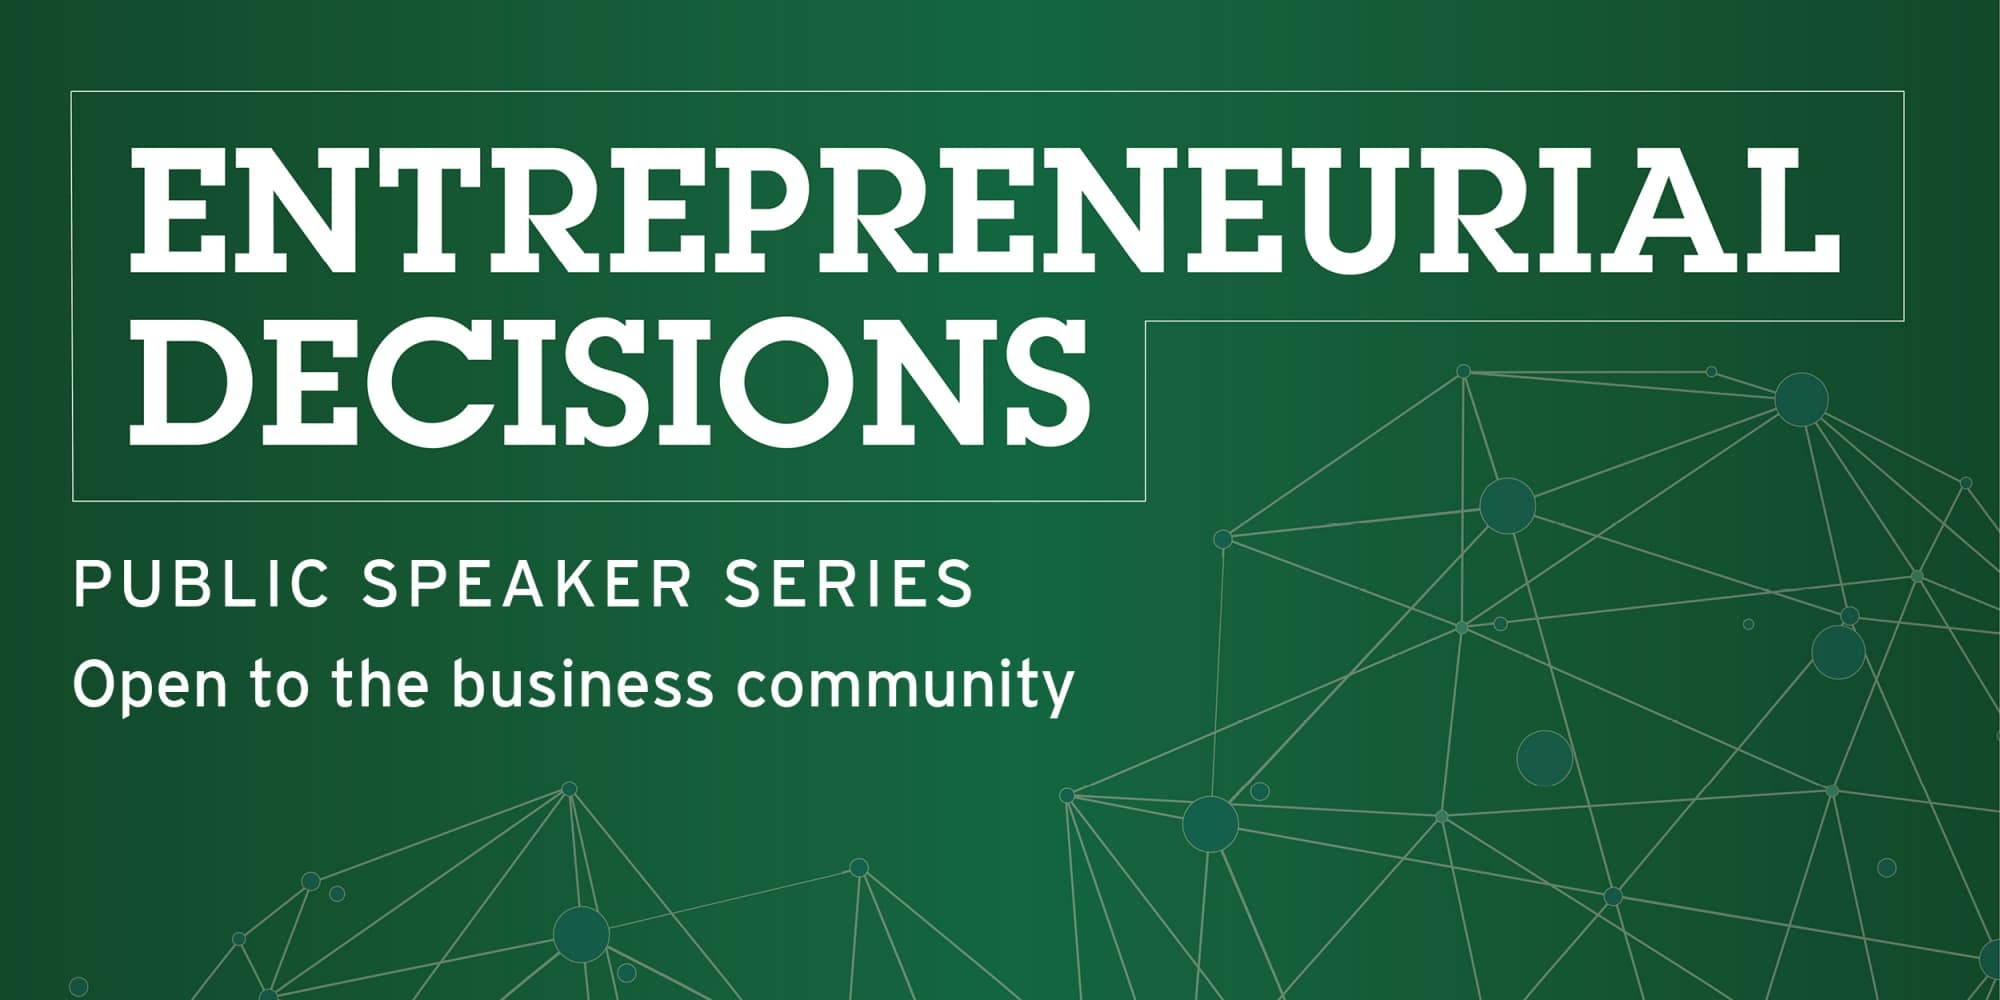 Entreprenuerial Decisions public speaker series open to the business community